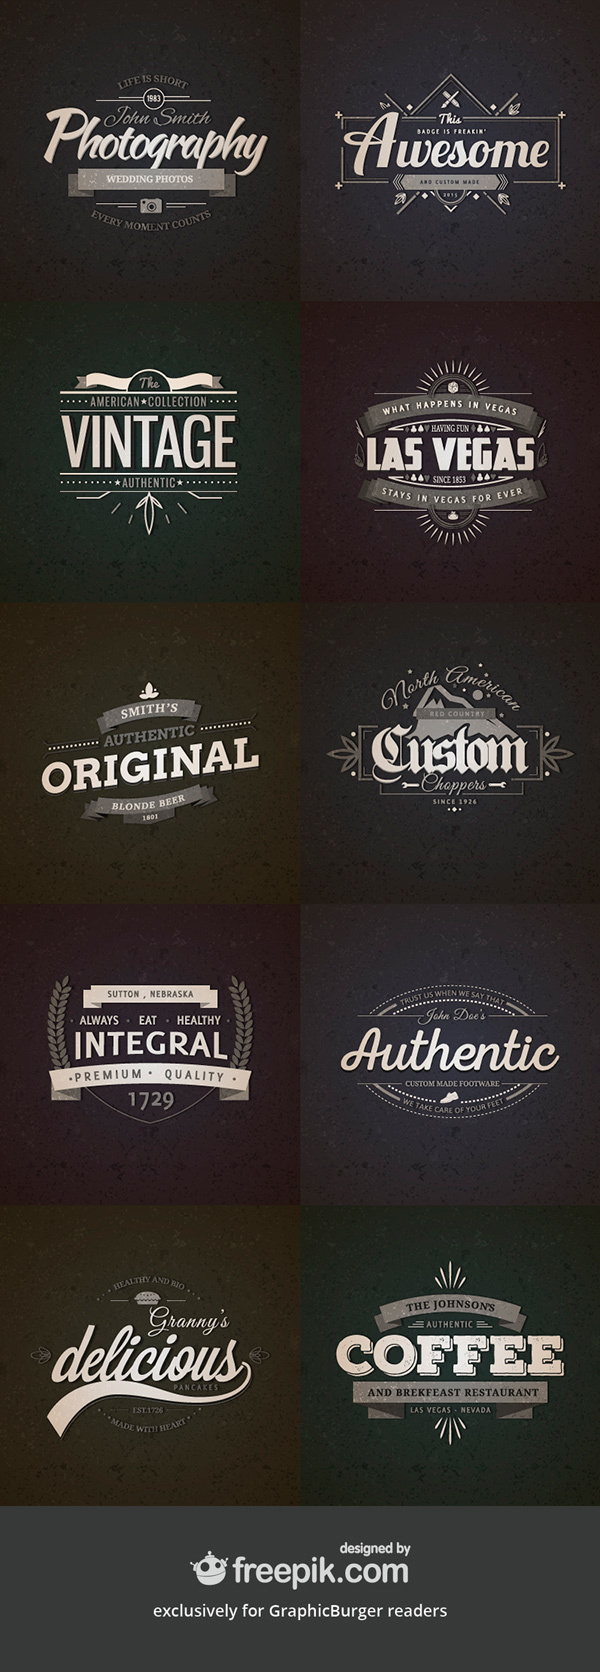 10-retro-vintage-badges-vol-1